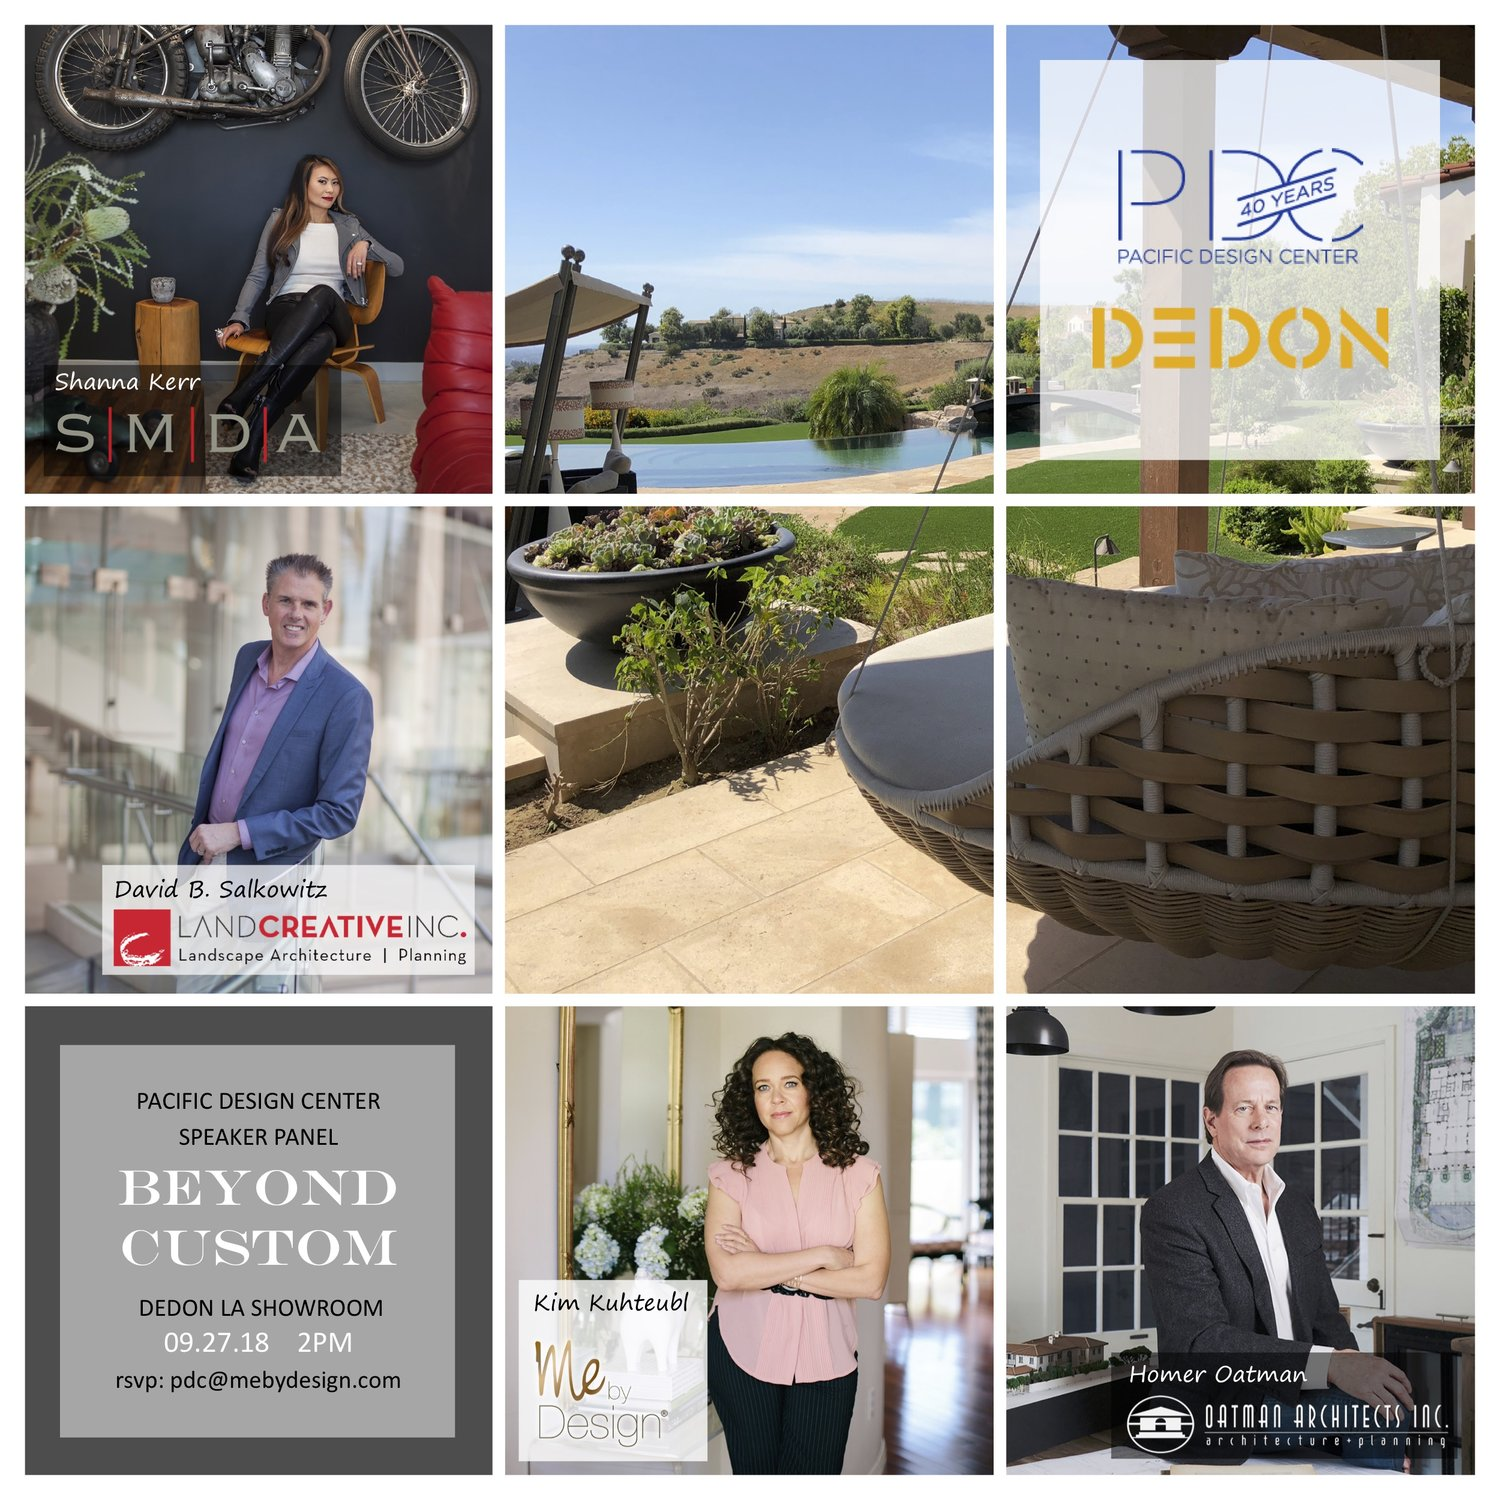 Join us at the PDC Fall Market in the Dedon Showroom — SMDA 2226425d40b9e